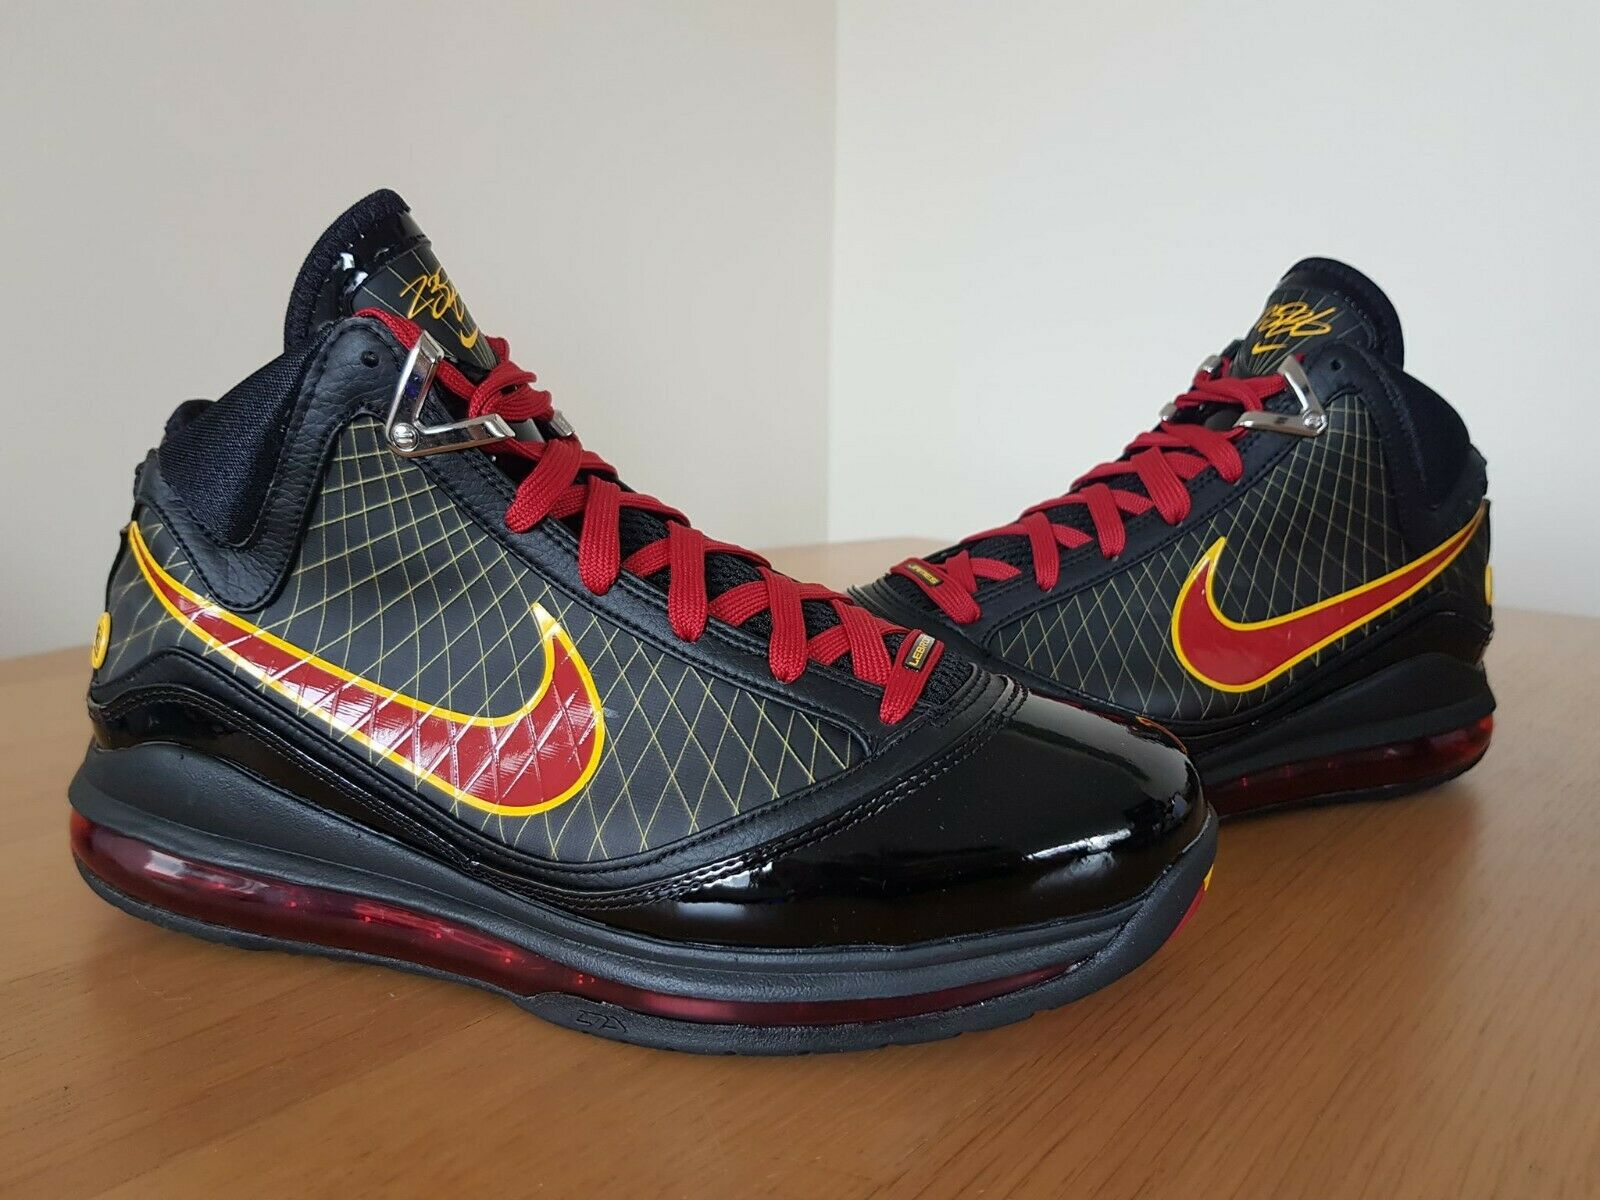 Nike LeBron 7 Fairfax Away 2020